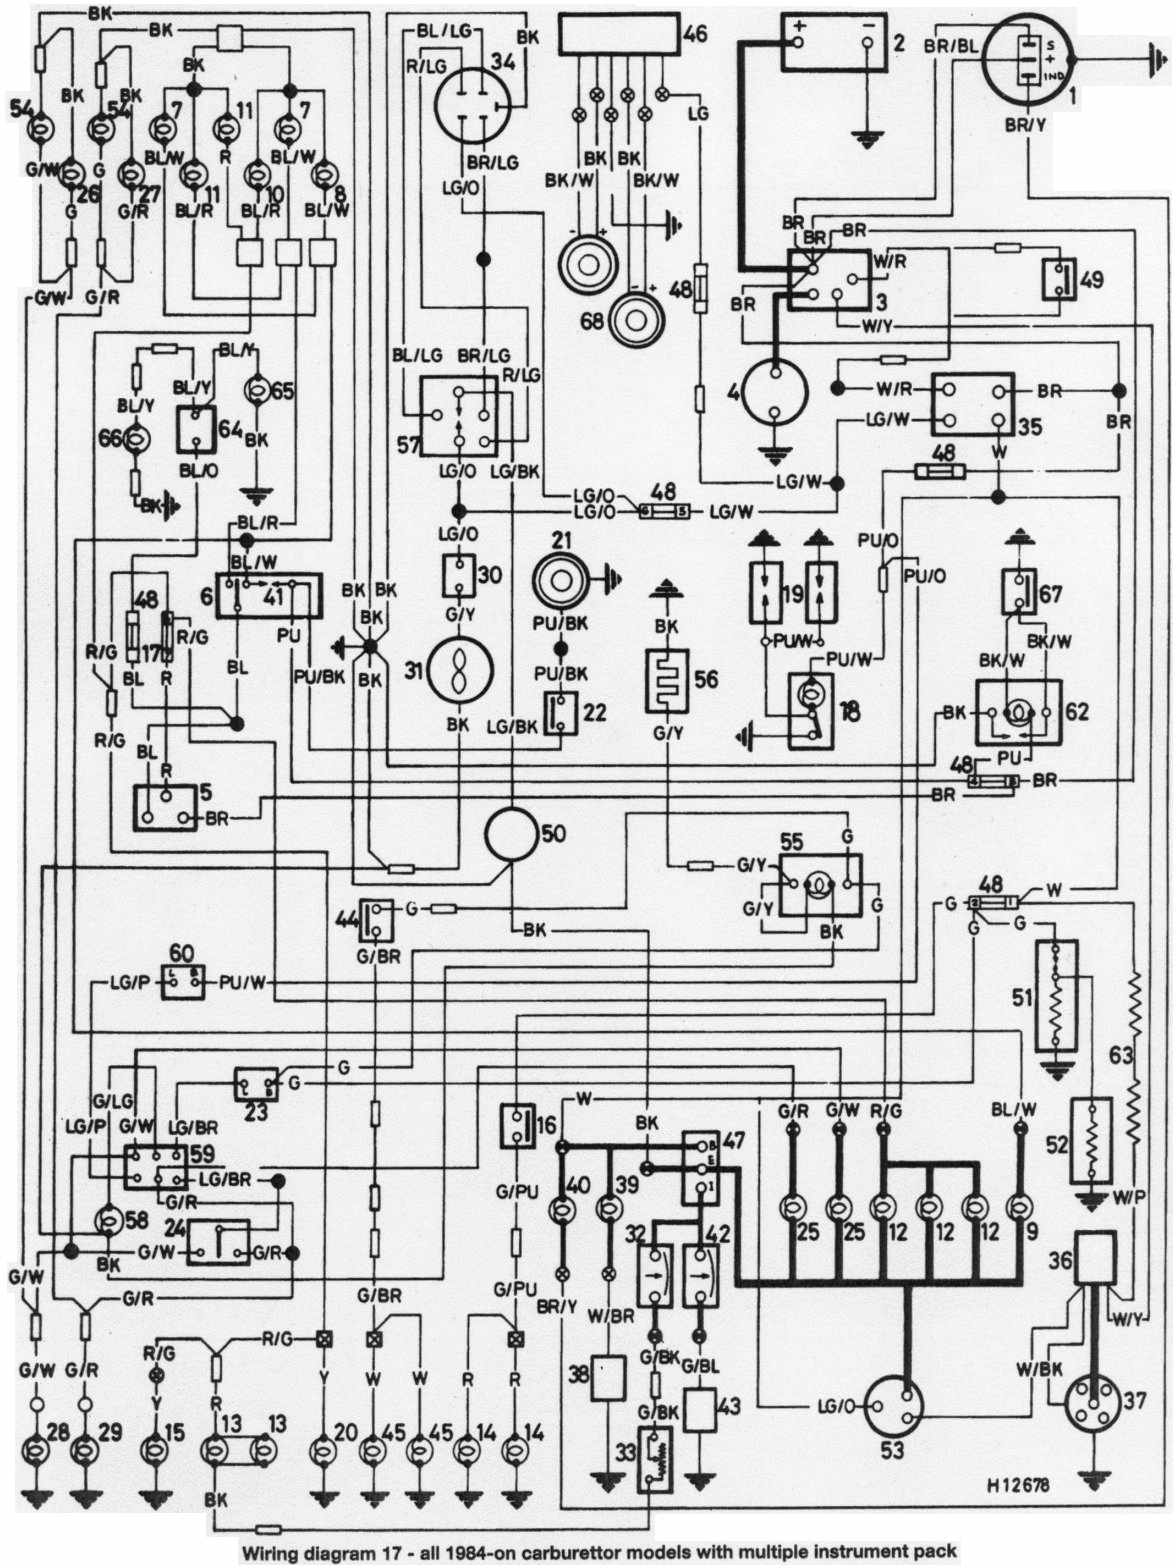 wiring diagram of 1984 onwards all mini series with multiple instrument pack?t\=1508499130 rover 25 wiring diagram wiring diagram symbols chart \u2022 free wiring rover 25 wiring diagram pdf at reclaimingppi.co